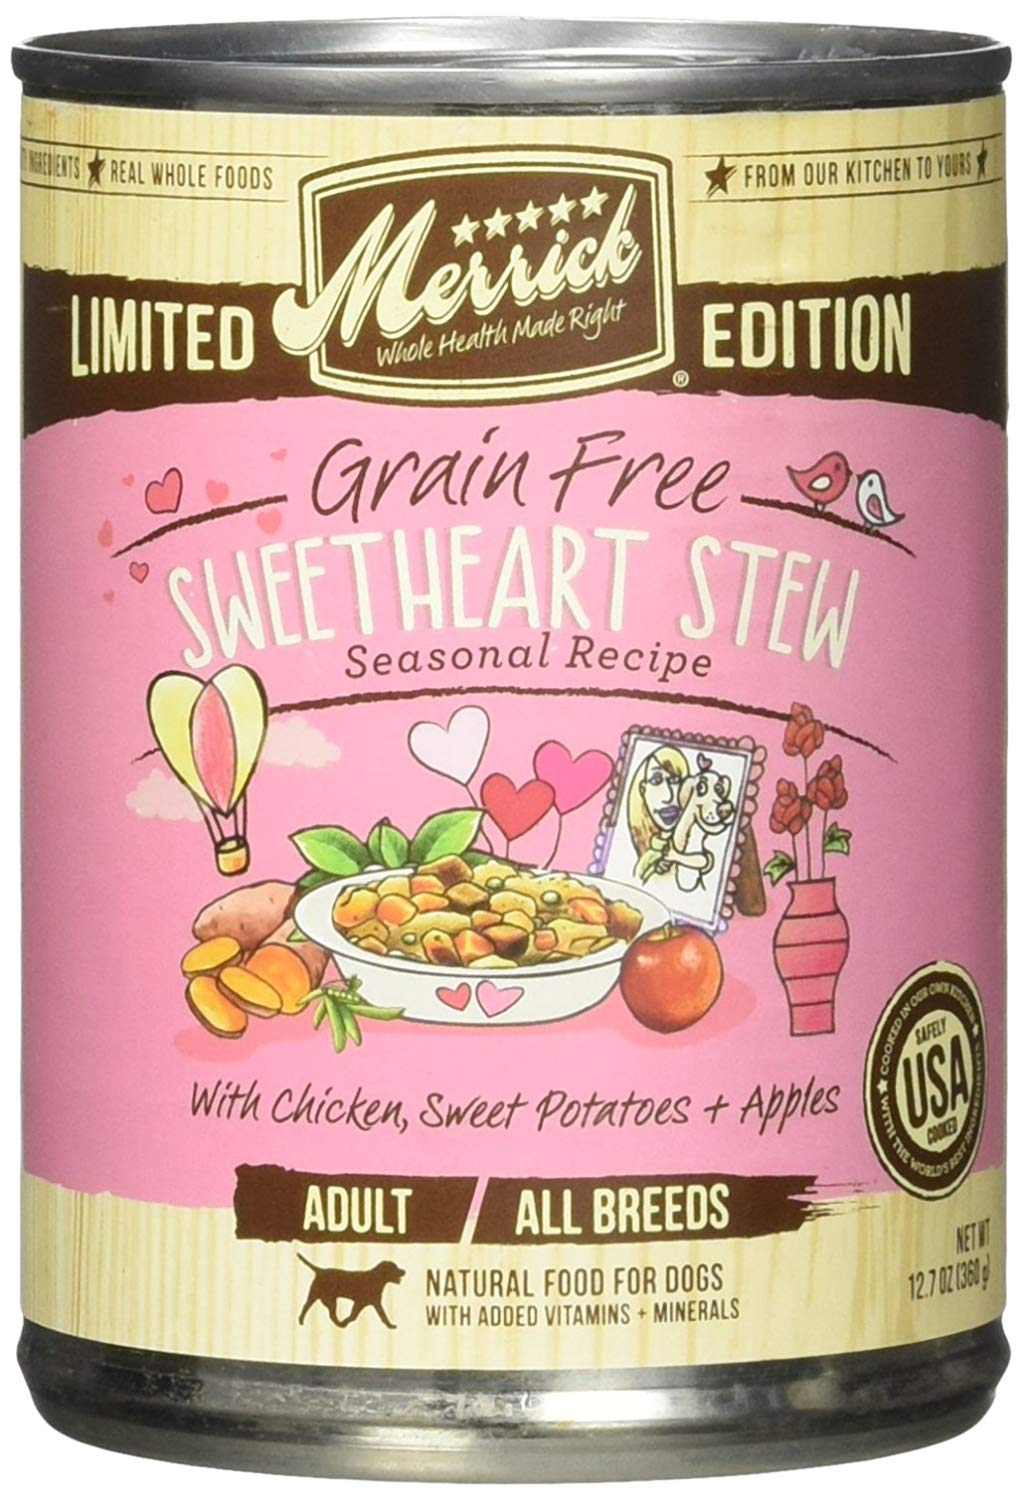 Merrick Limited Edition Grain-Free Sweetheart Stew Canned Dog Food